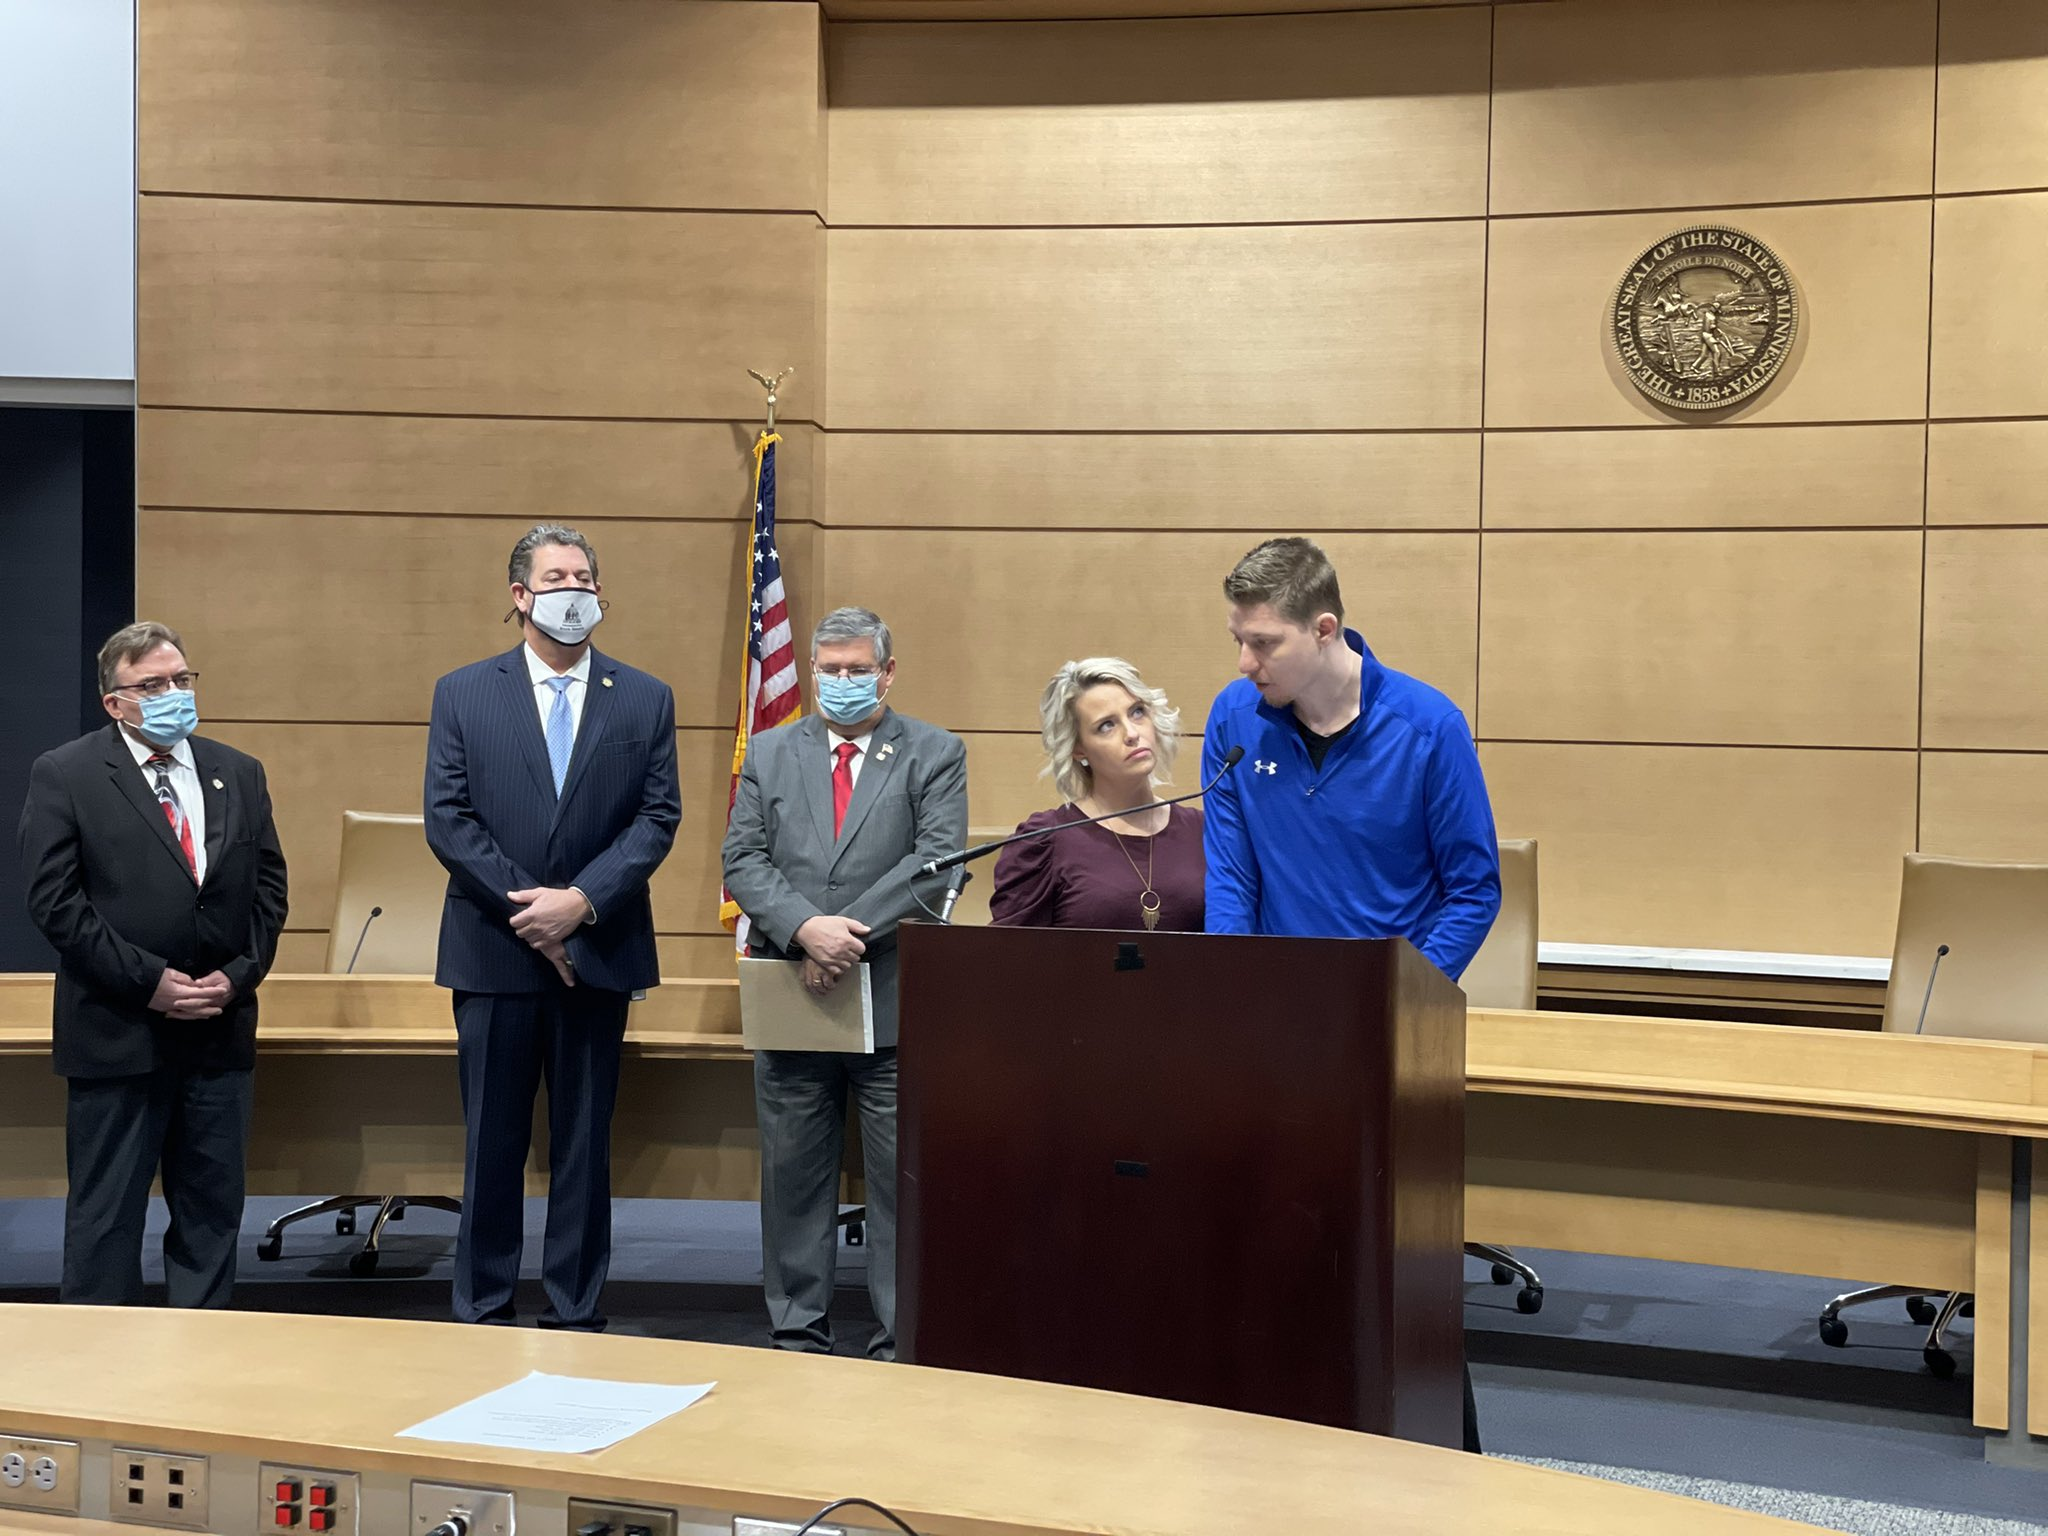 Megan and Arik Matson speak at a Press Conference